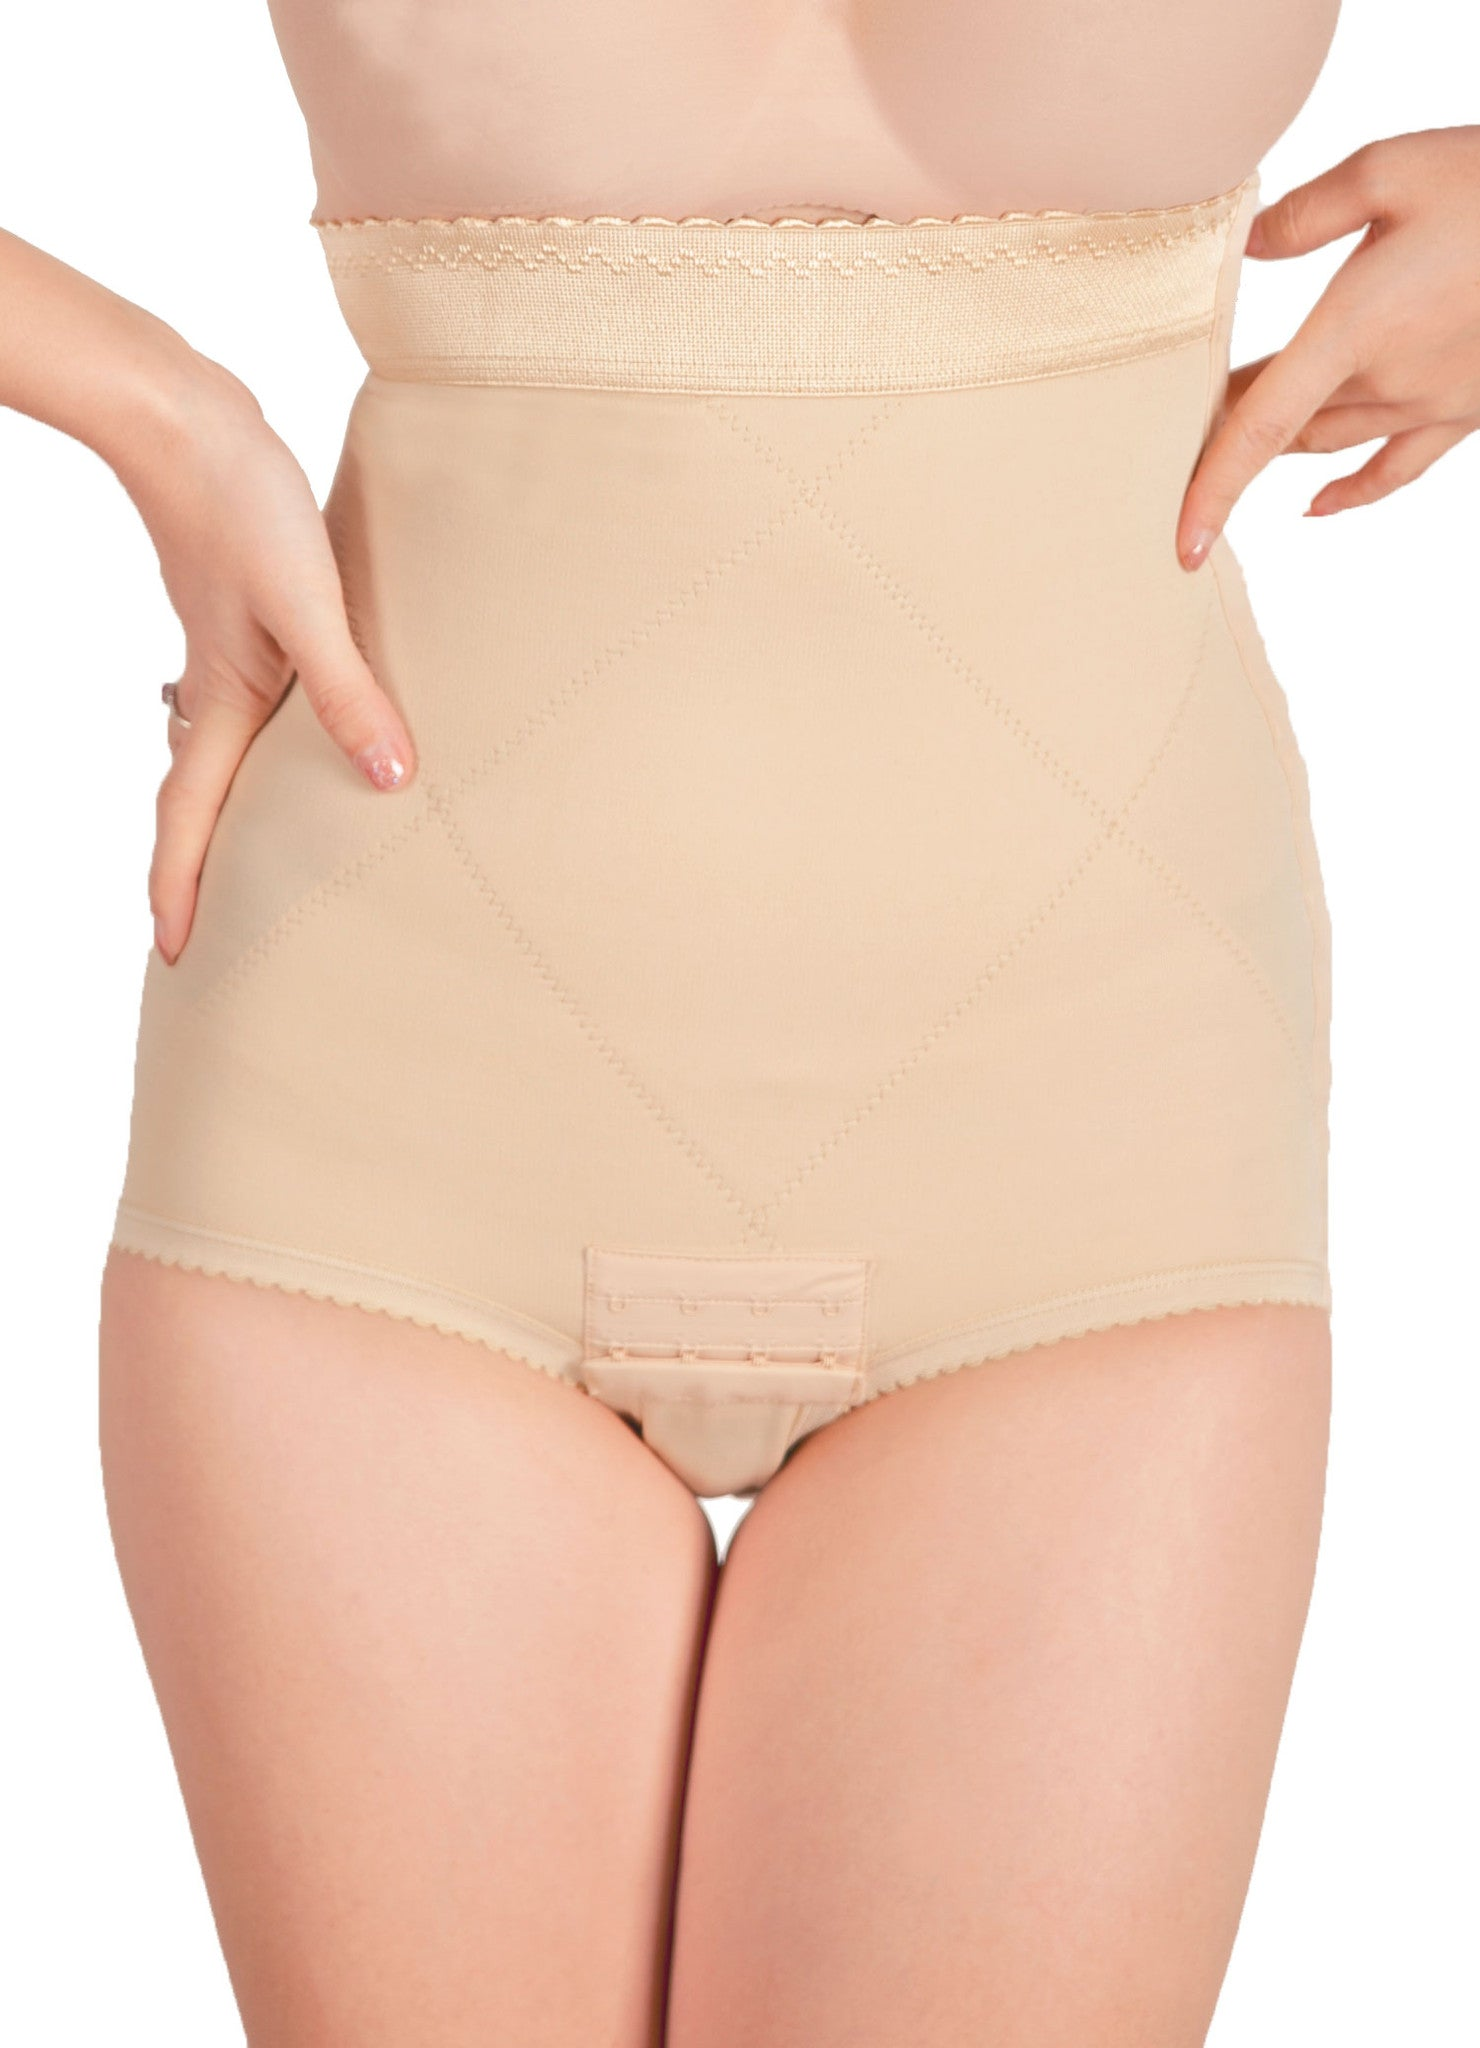 93237fcf4ff18 Complete C Section Recovery Kit – Wink Shapewear